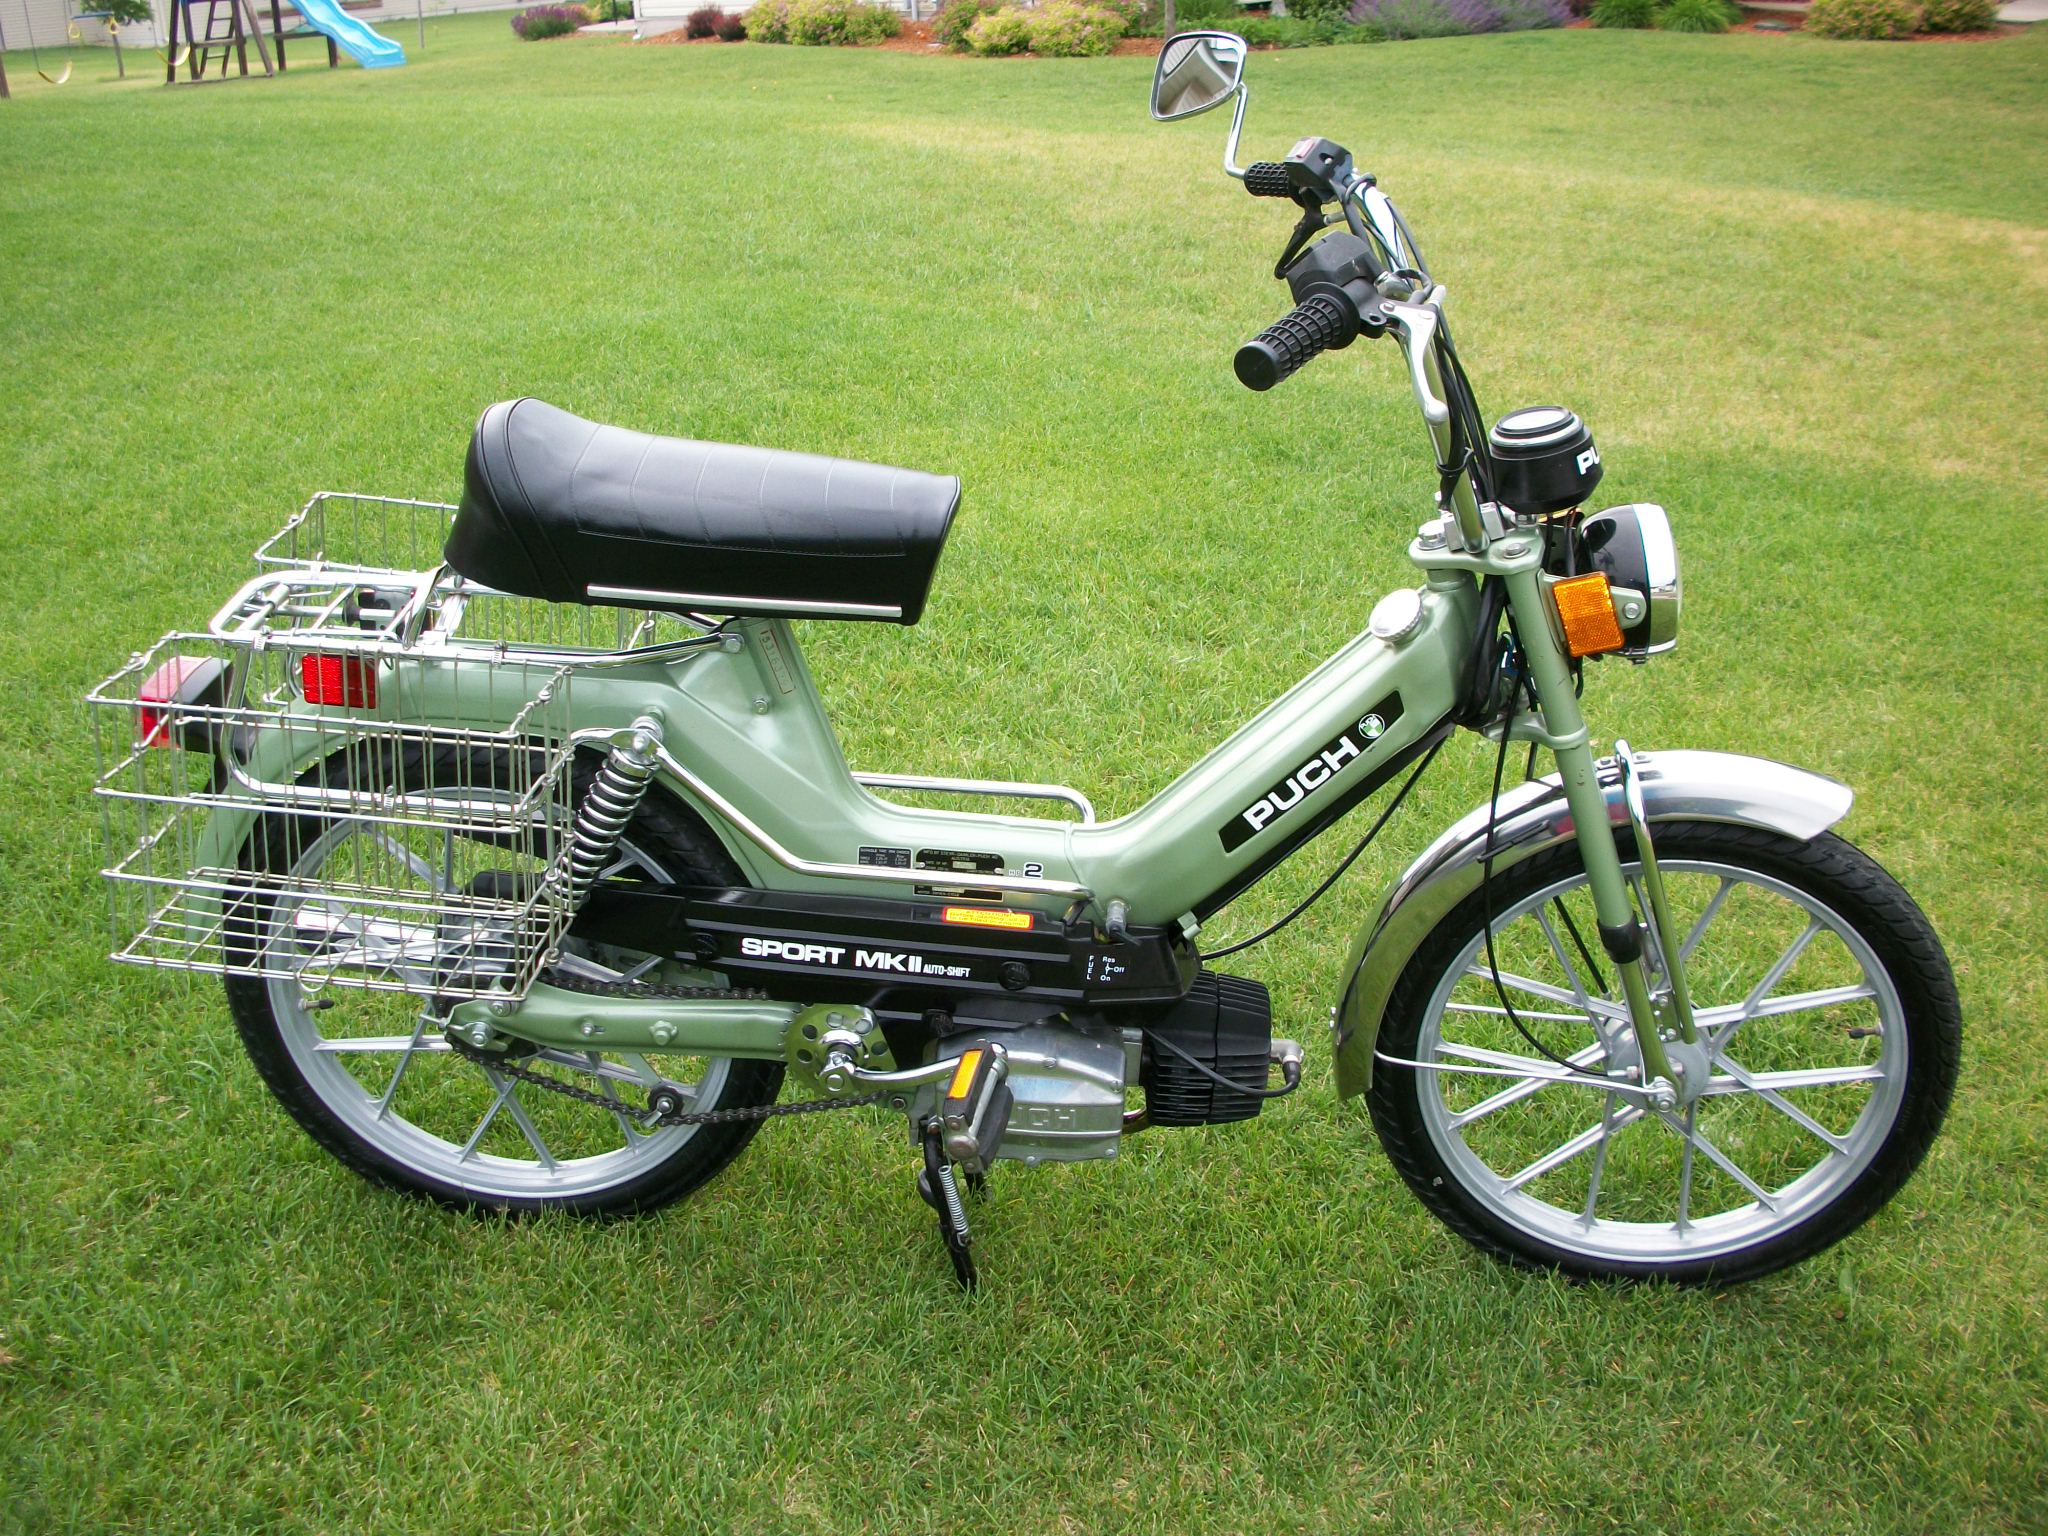 puch moped wiring diagram reconditioned 1978 puch sport mkii sold sunday 2014 tao moped wiring diagram #5